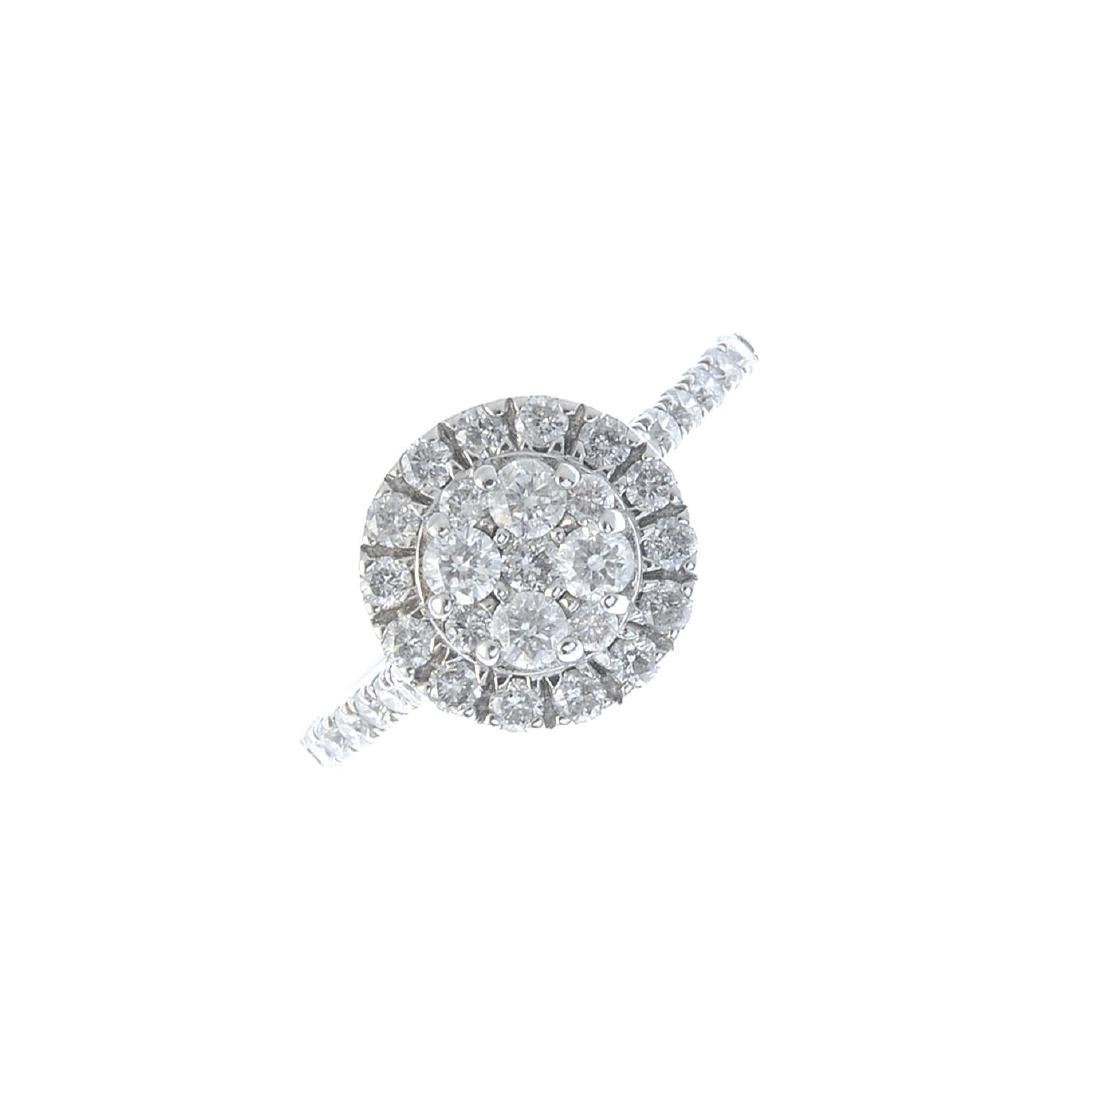 A diamond cluster ring. Of circular outline, the